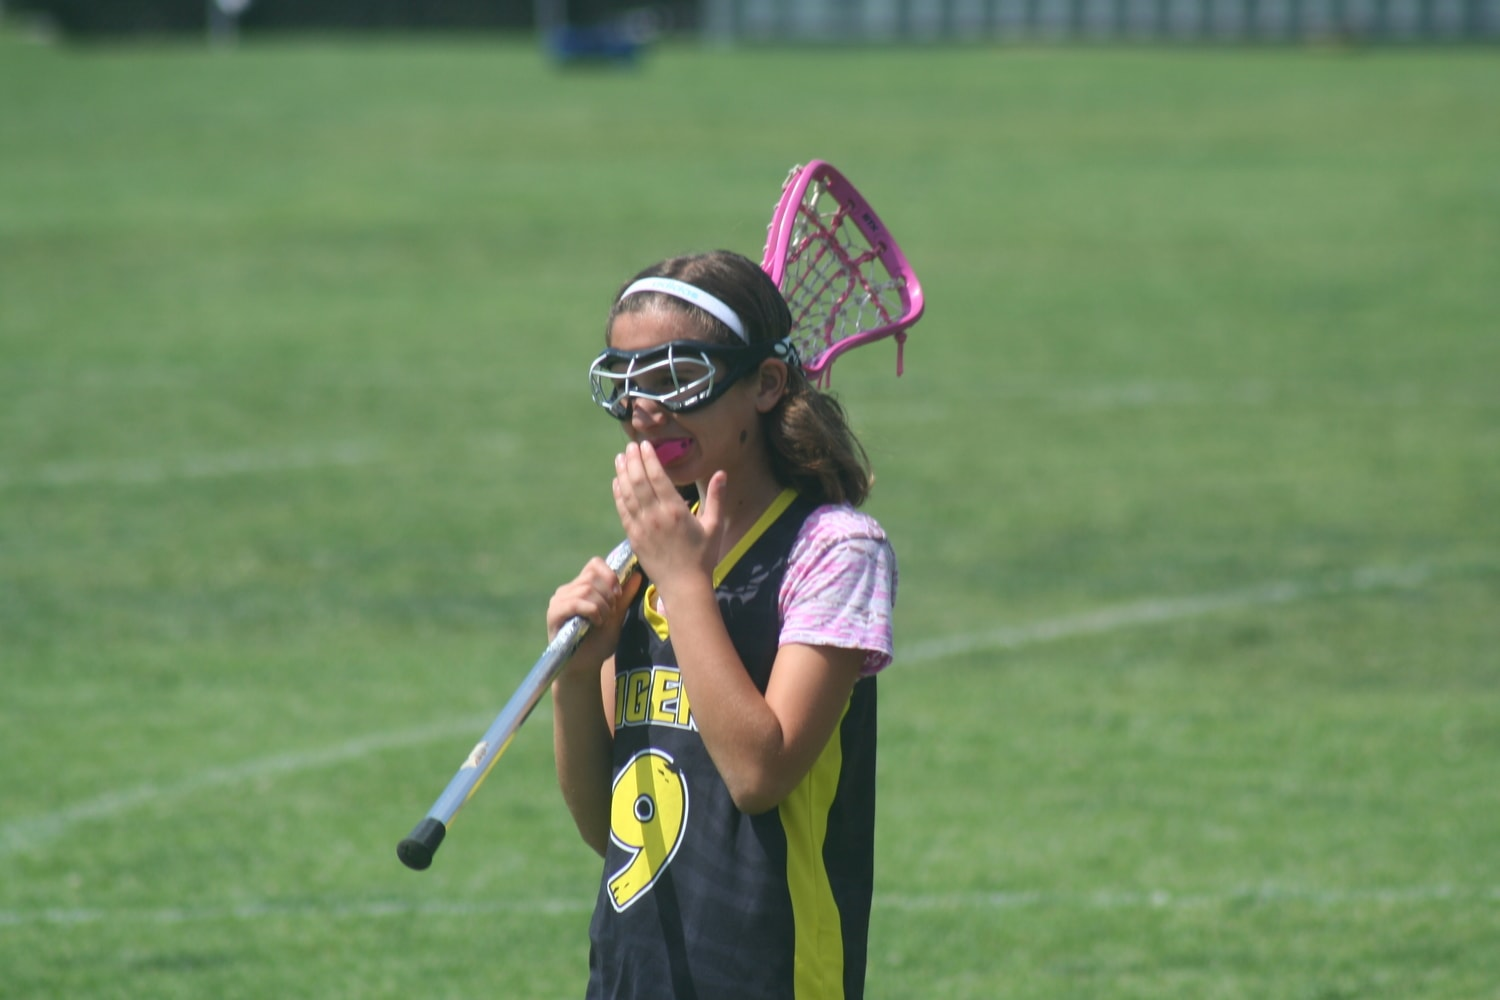 Sports Injuries: A young lacrosse player has proper eye protection and mouthguard in place